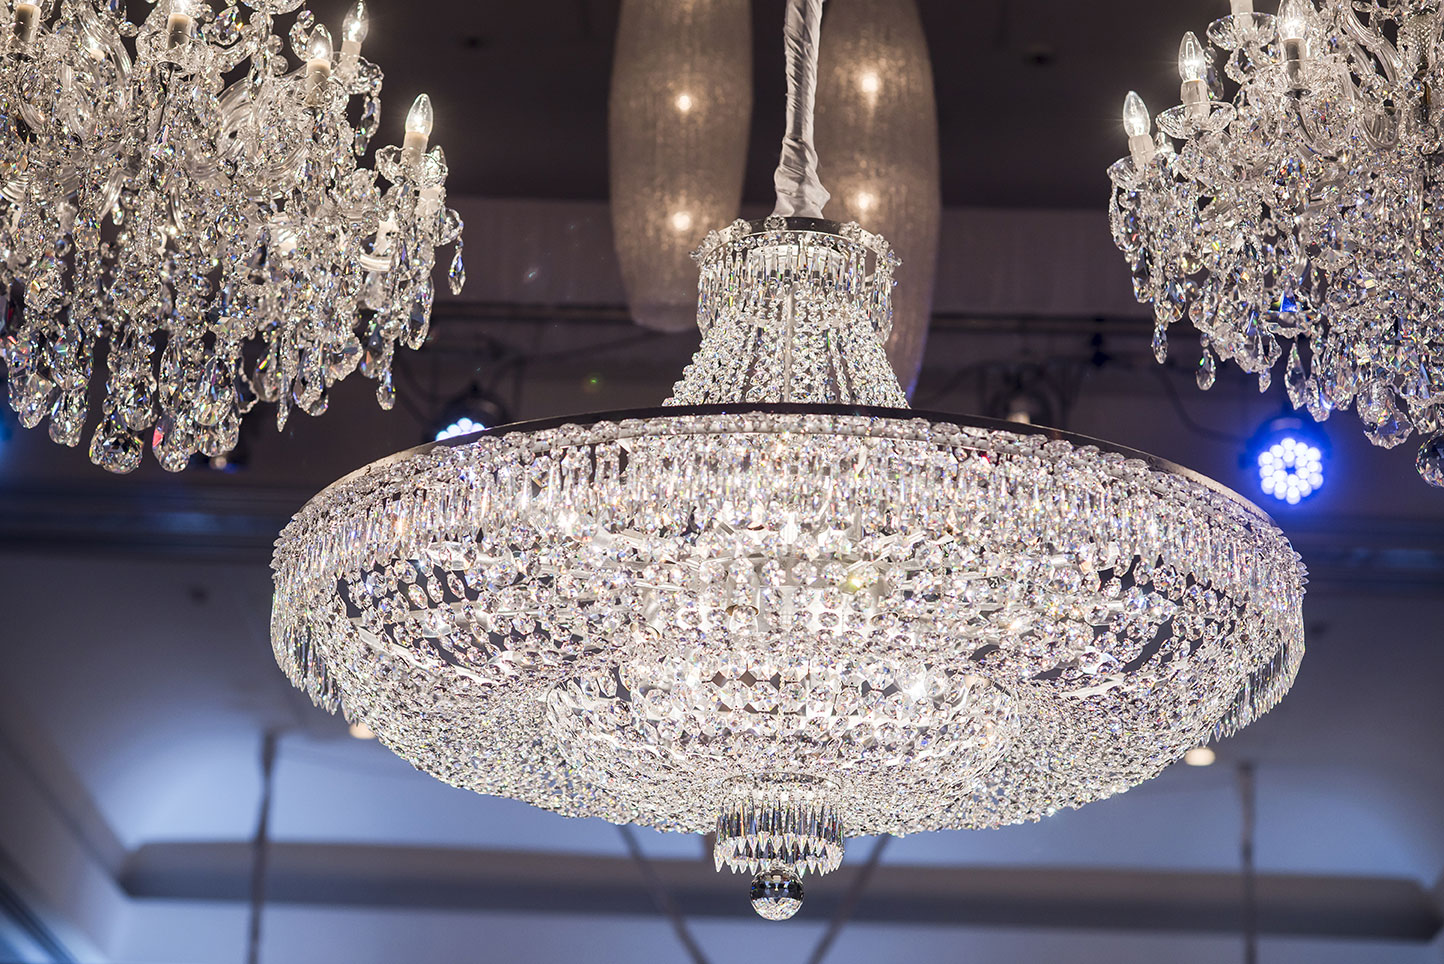 Crystal Palace Lighting Best Selling Chandeliers in 2018